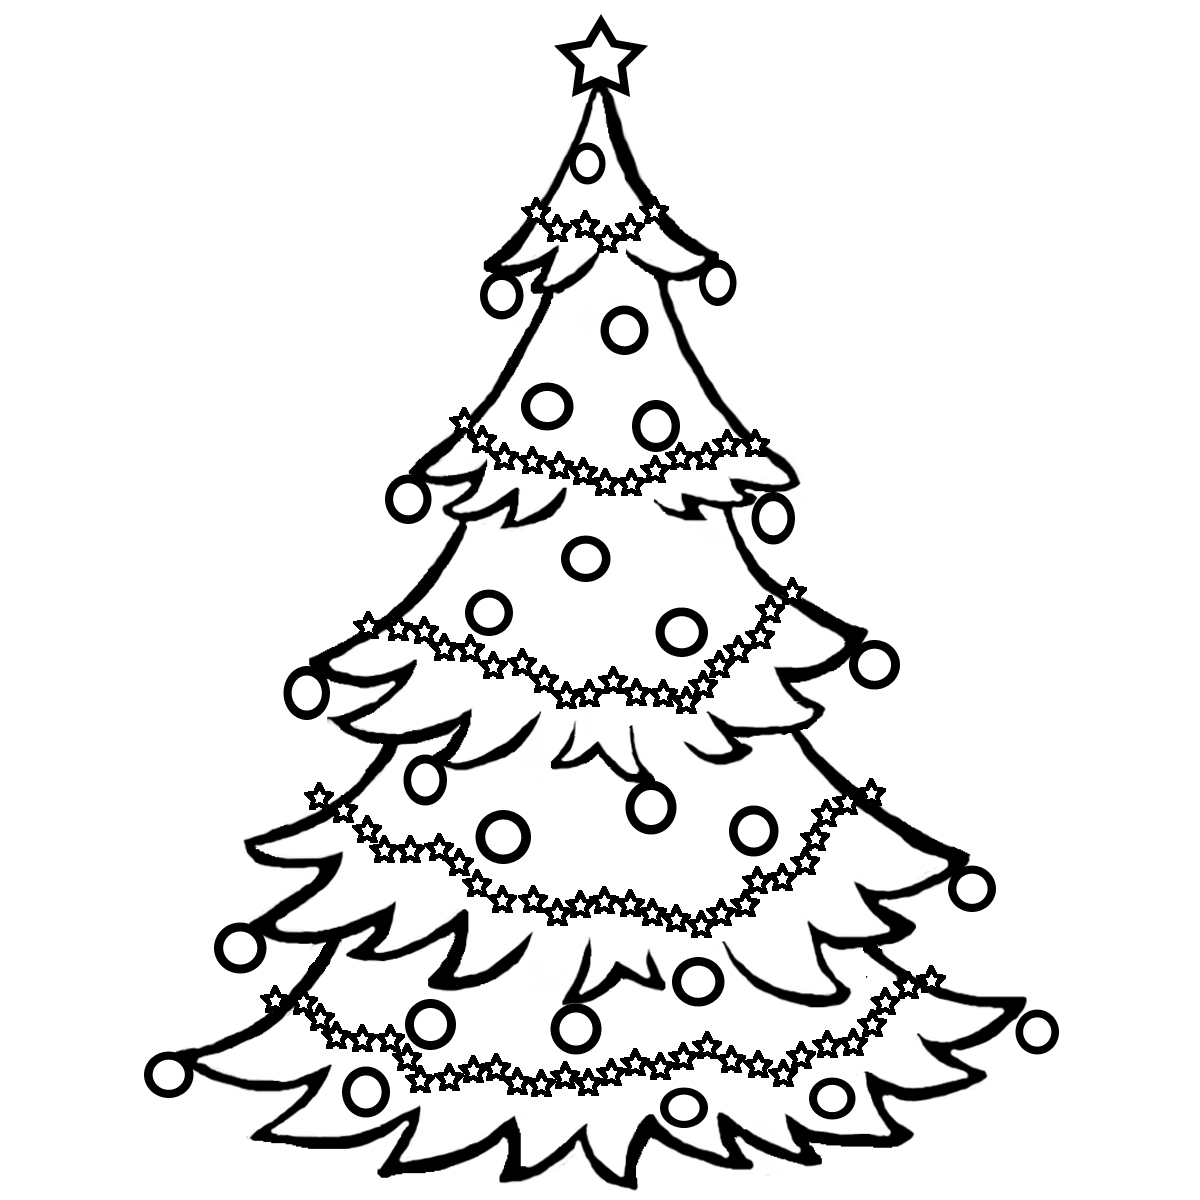 Christmas Ornament Drawing